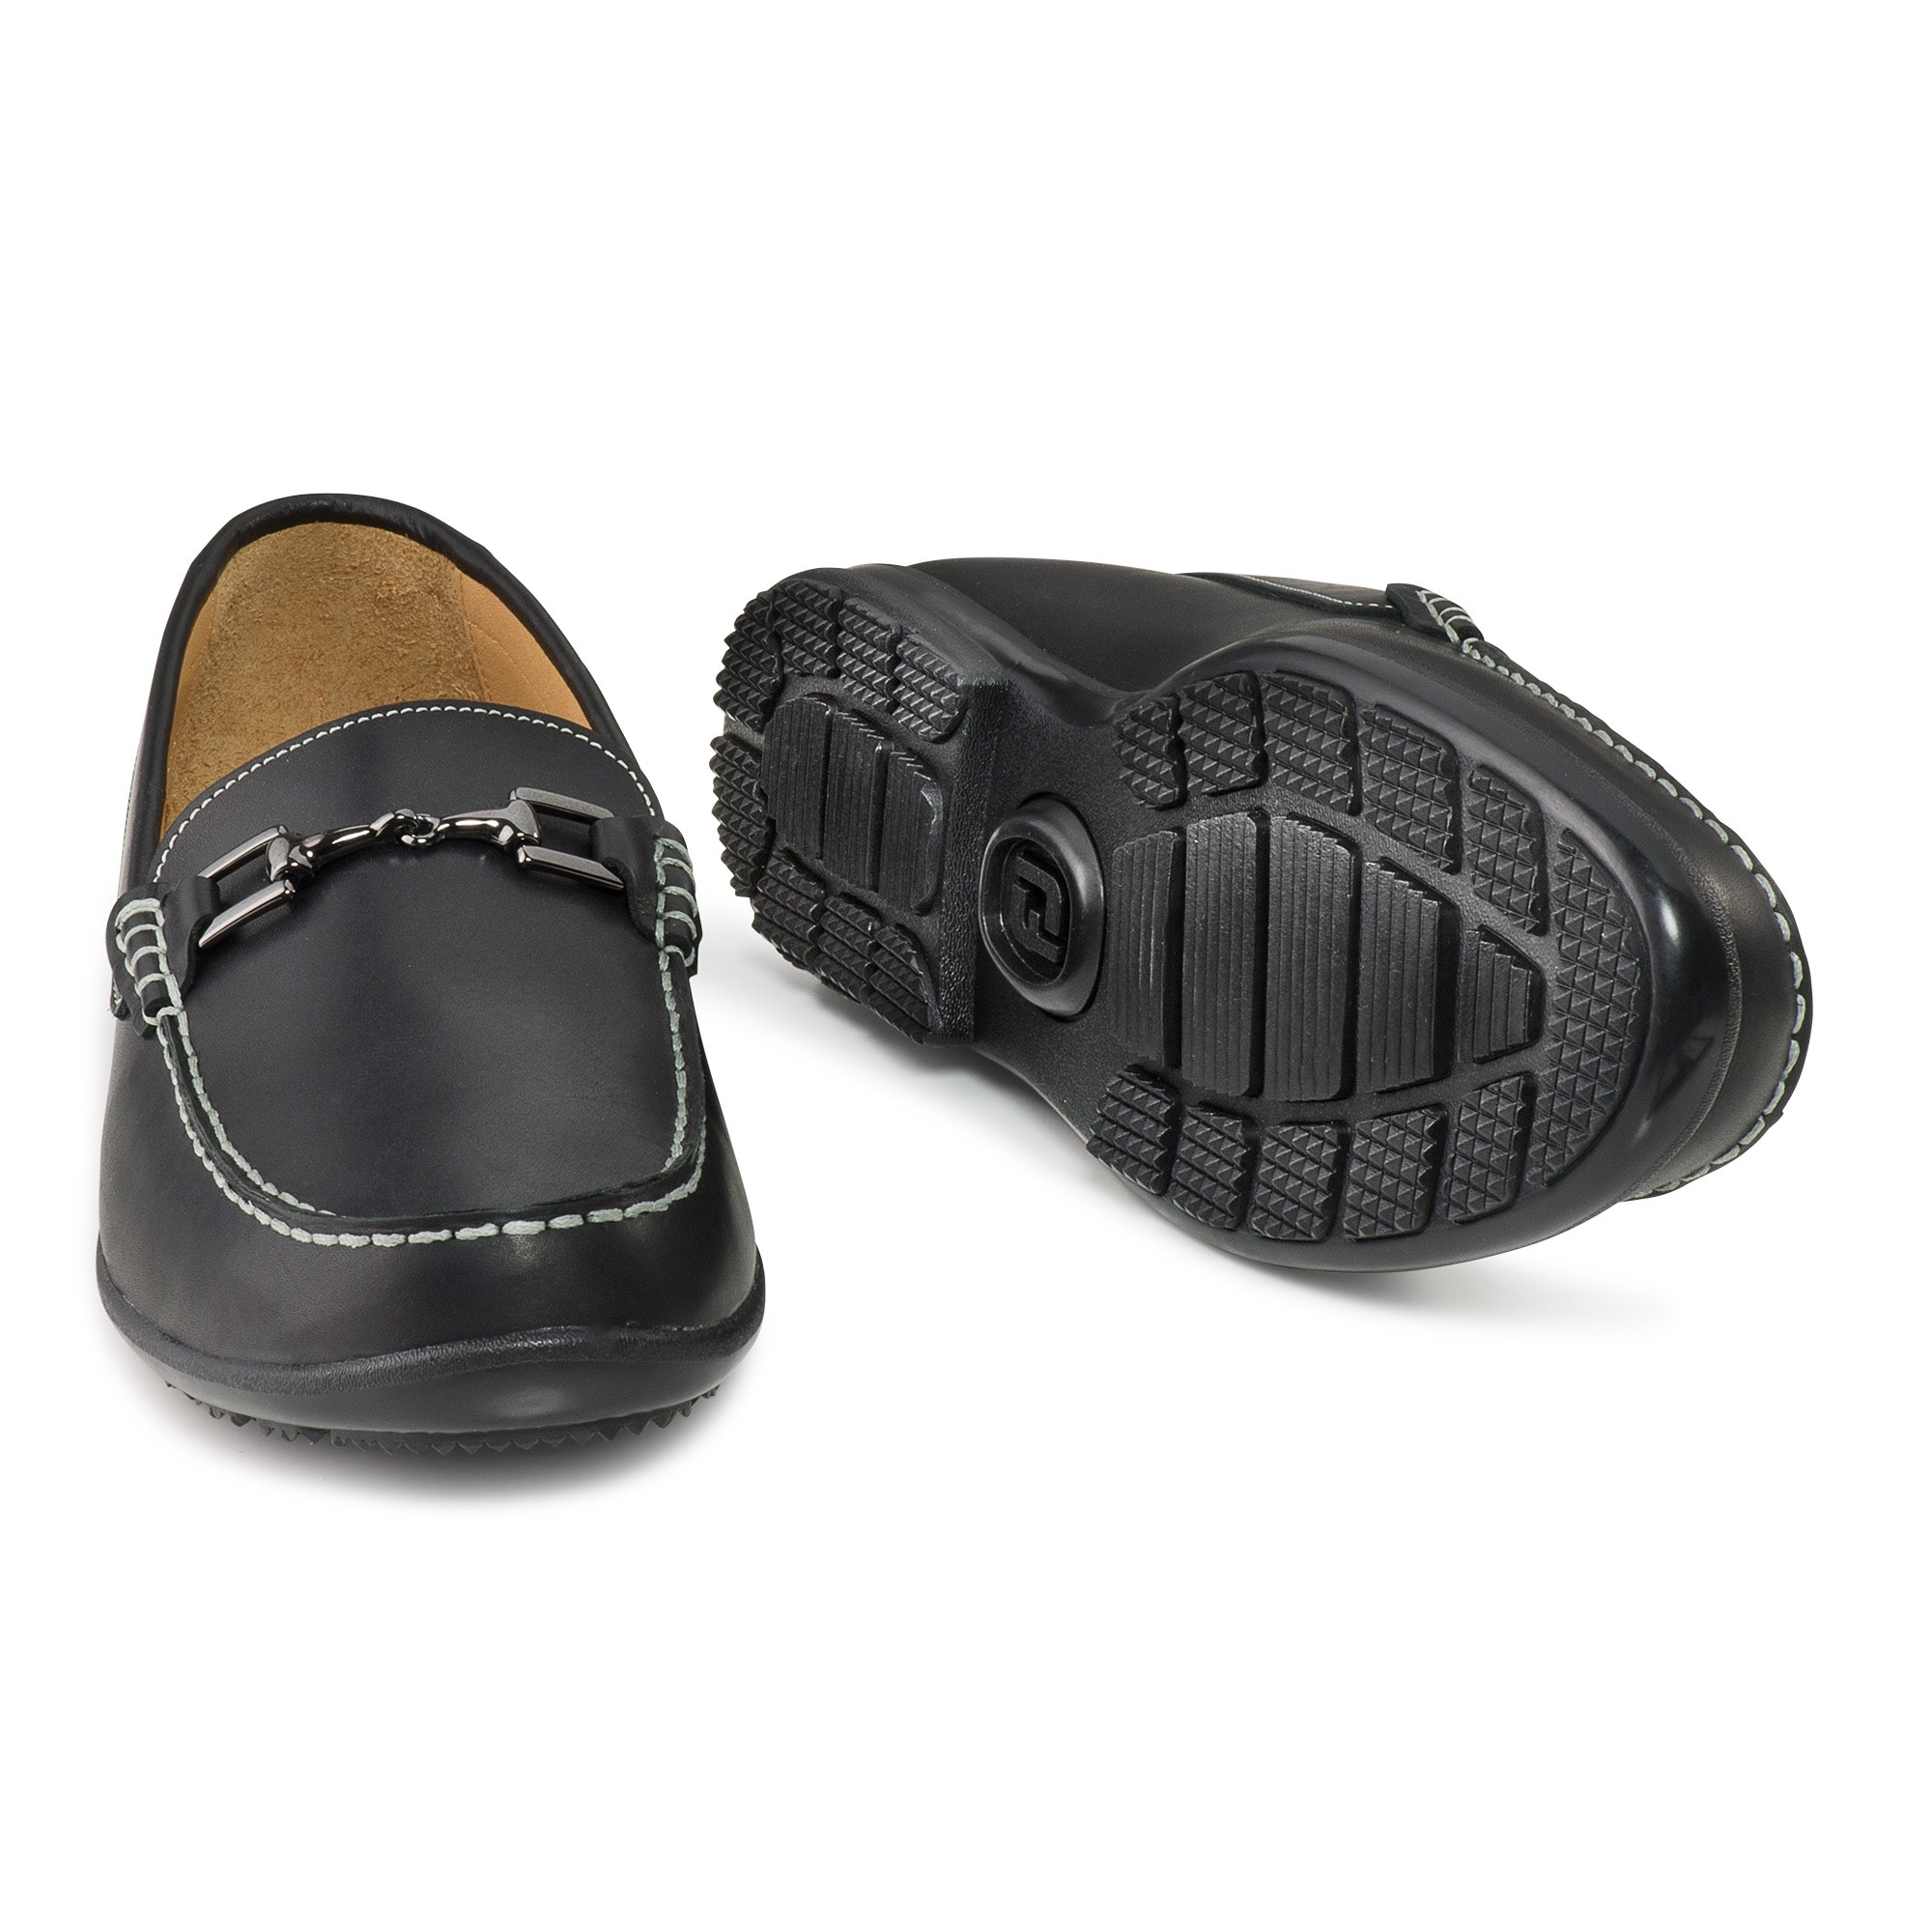 Club Casuals Buckle Loafer Golf Shoes